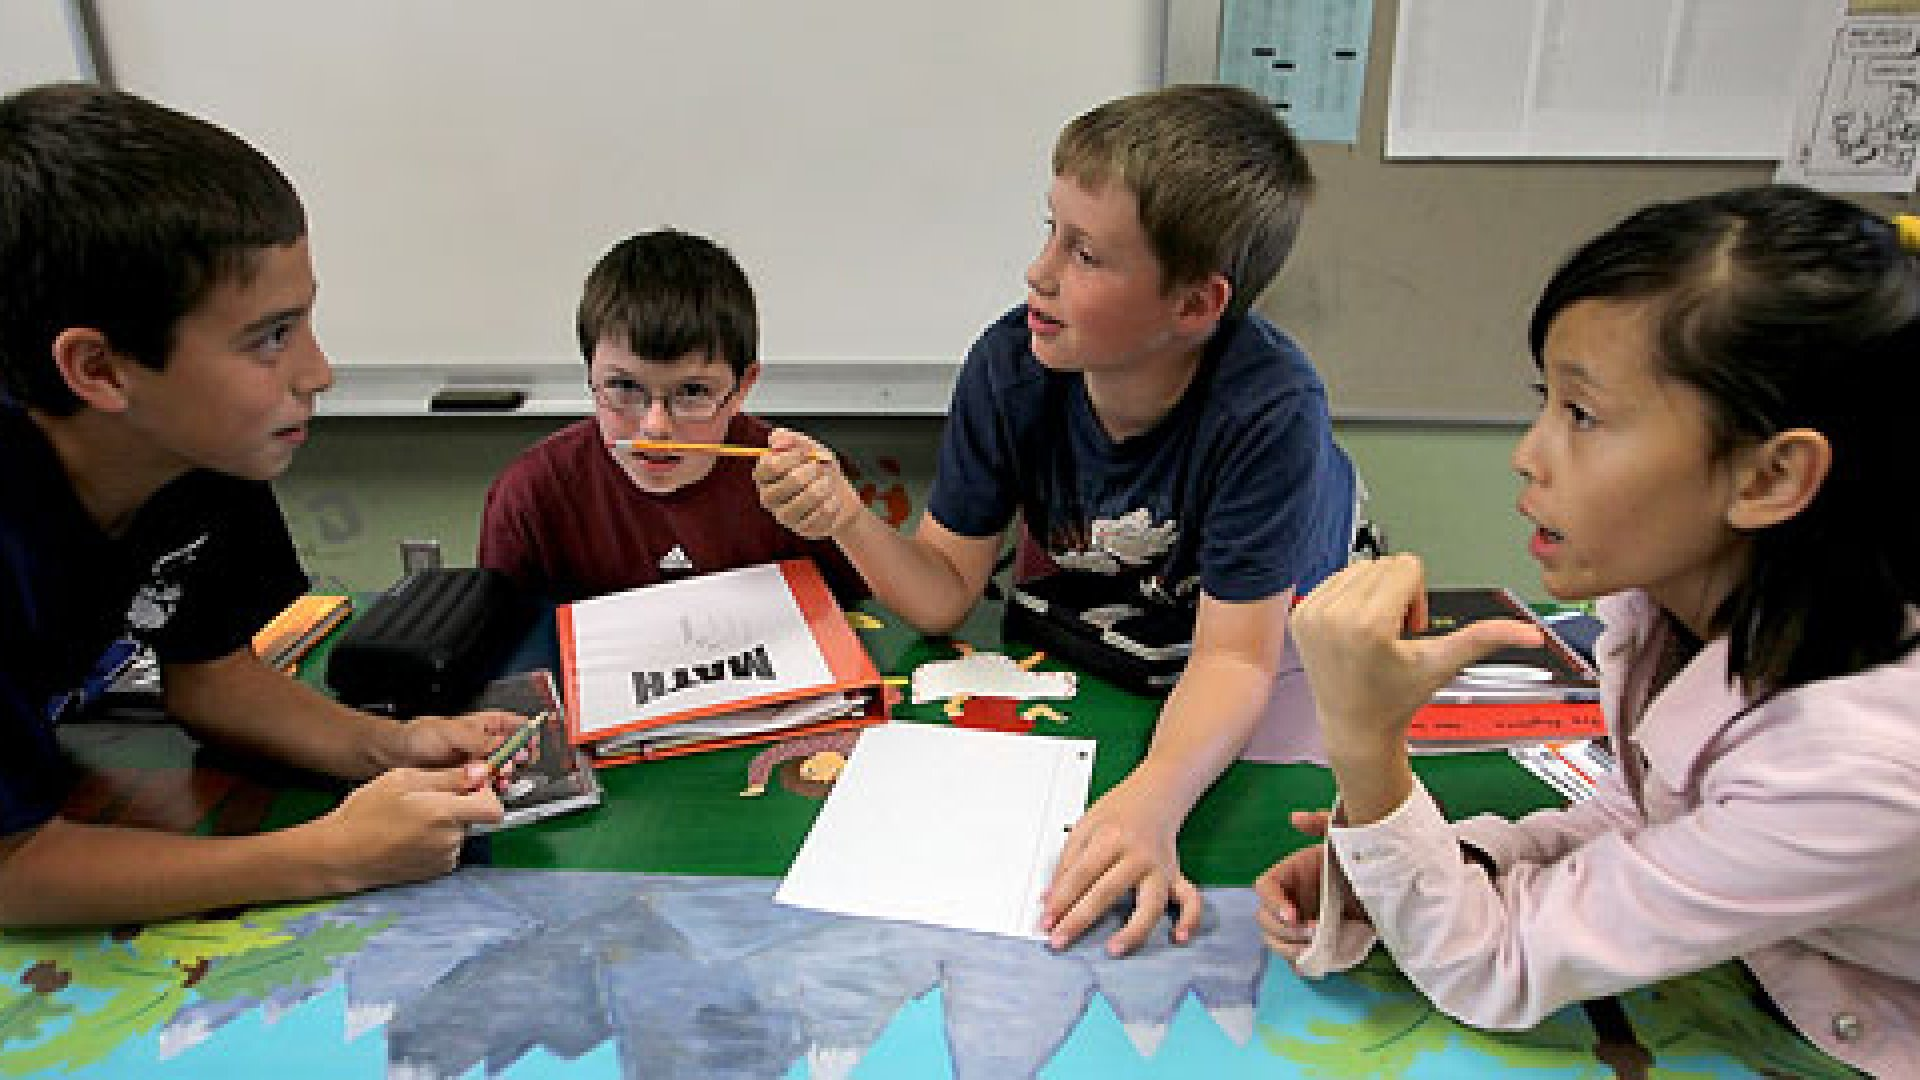 Sixth-graders Adam LeMay, 14, left, Grant Sunderman, 12, John Sampson, 11, and Jade Arrowsmith, 11, try to figure out math methods for their assignment in class.